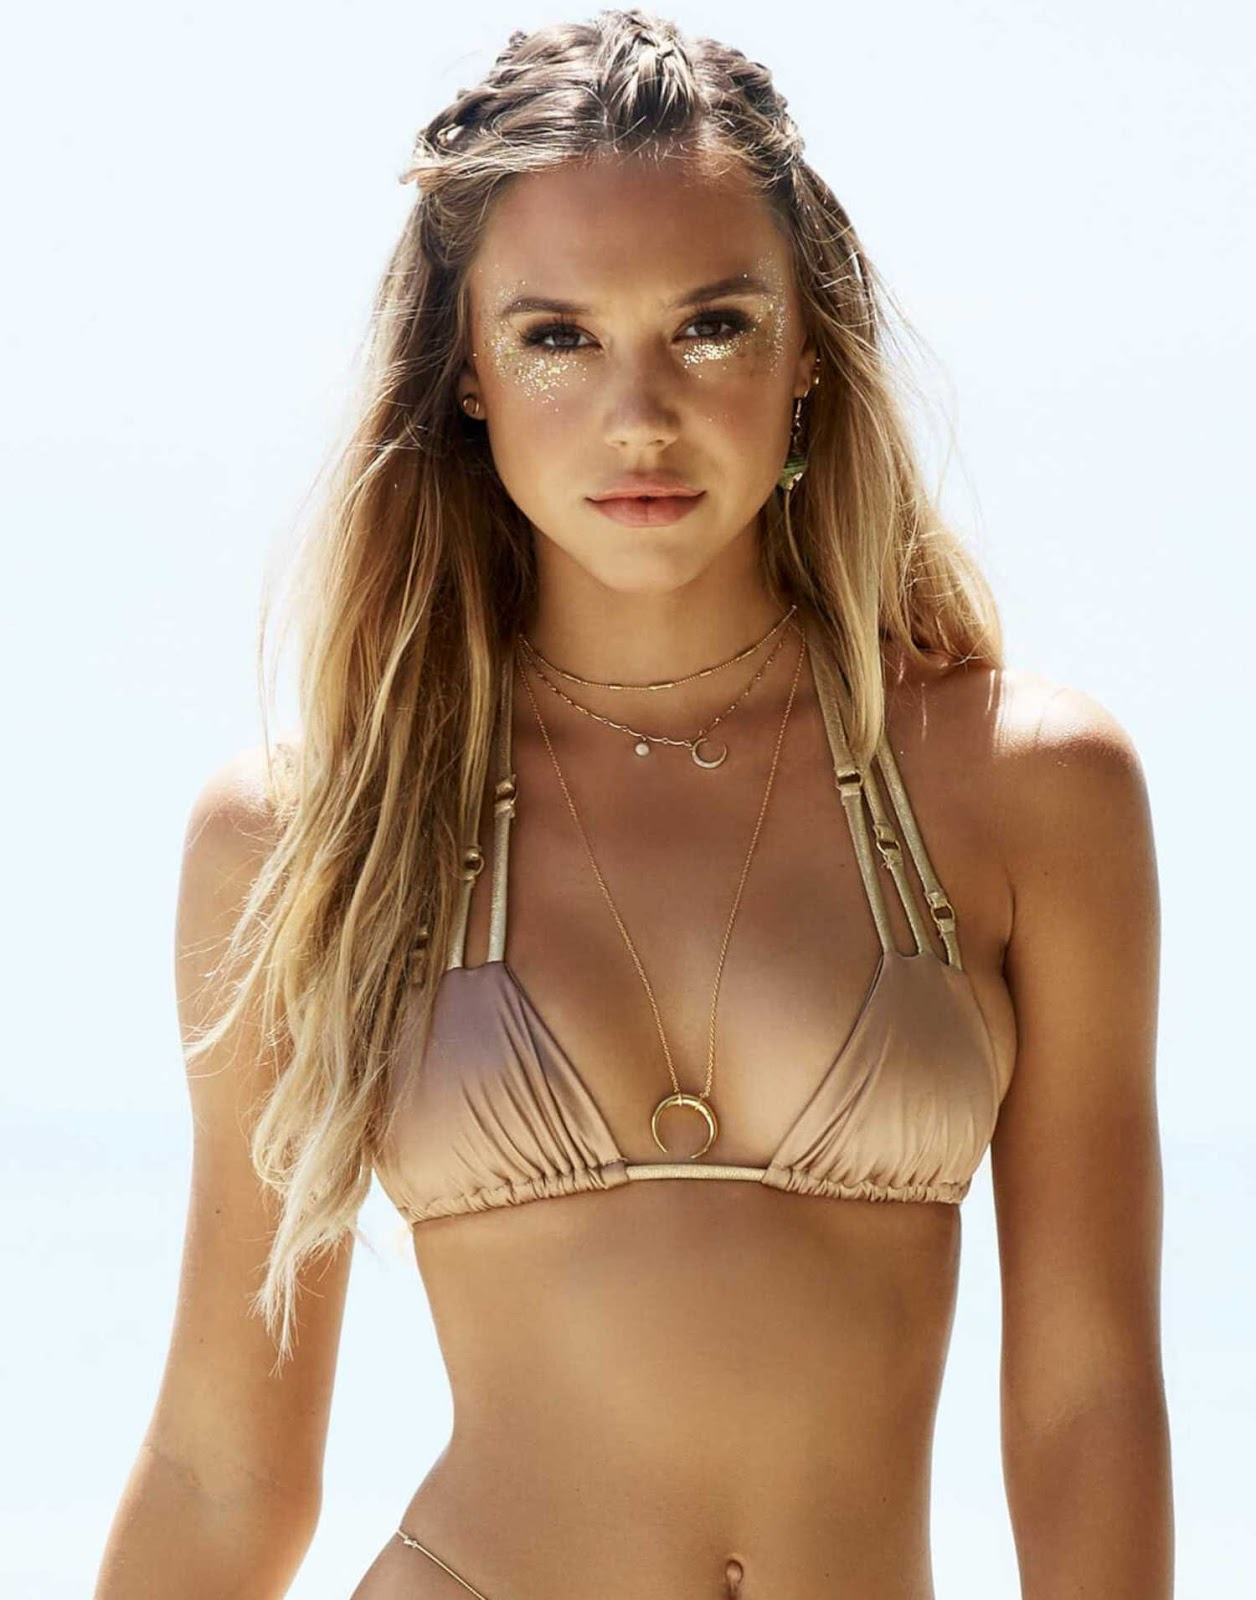 Alexis Ren stars in the Beach Bunny Swimwear Lookbook 2017